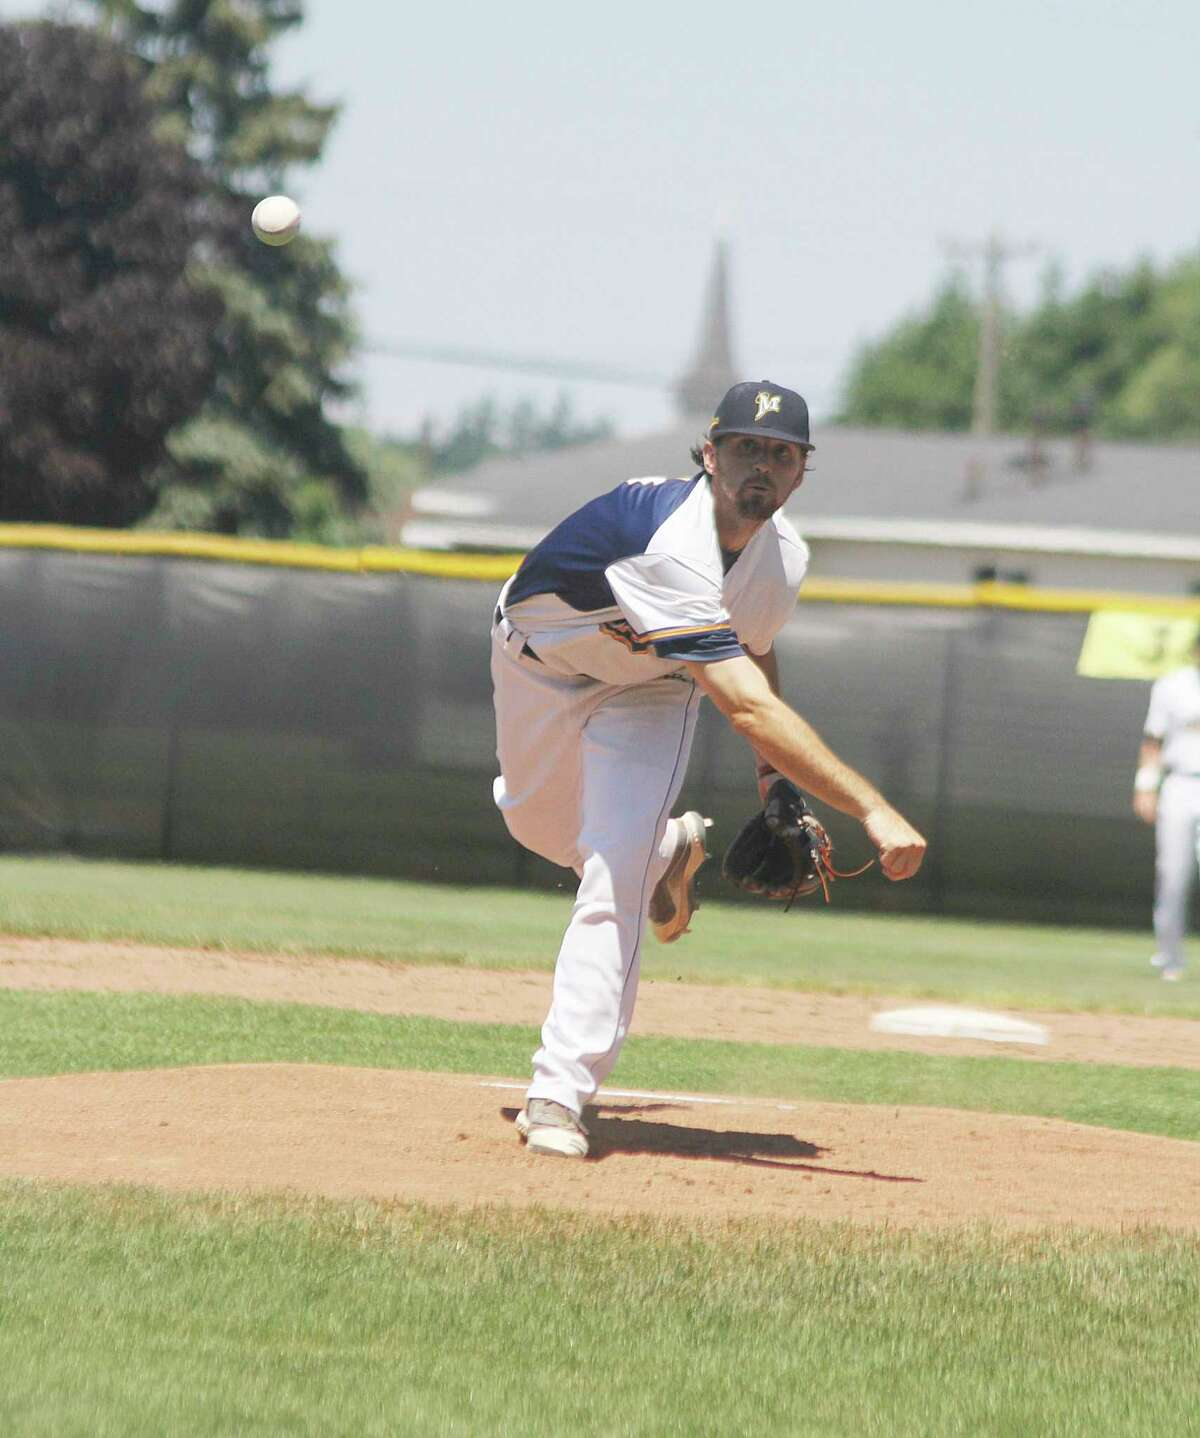 Player-manager Roddy MacNeil and the Manistee Saints will kick off their 2021 campaign this weekend with a doubleheader on the road Saturday and a doubleheader at Rietz Park on Sunday. (News Advocate file photo)